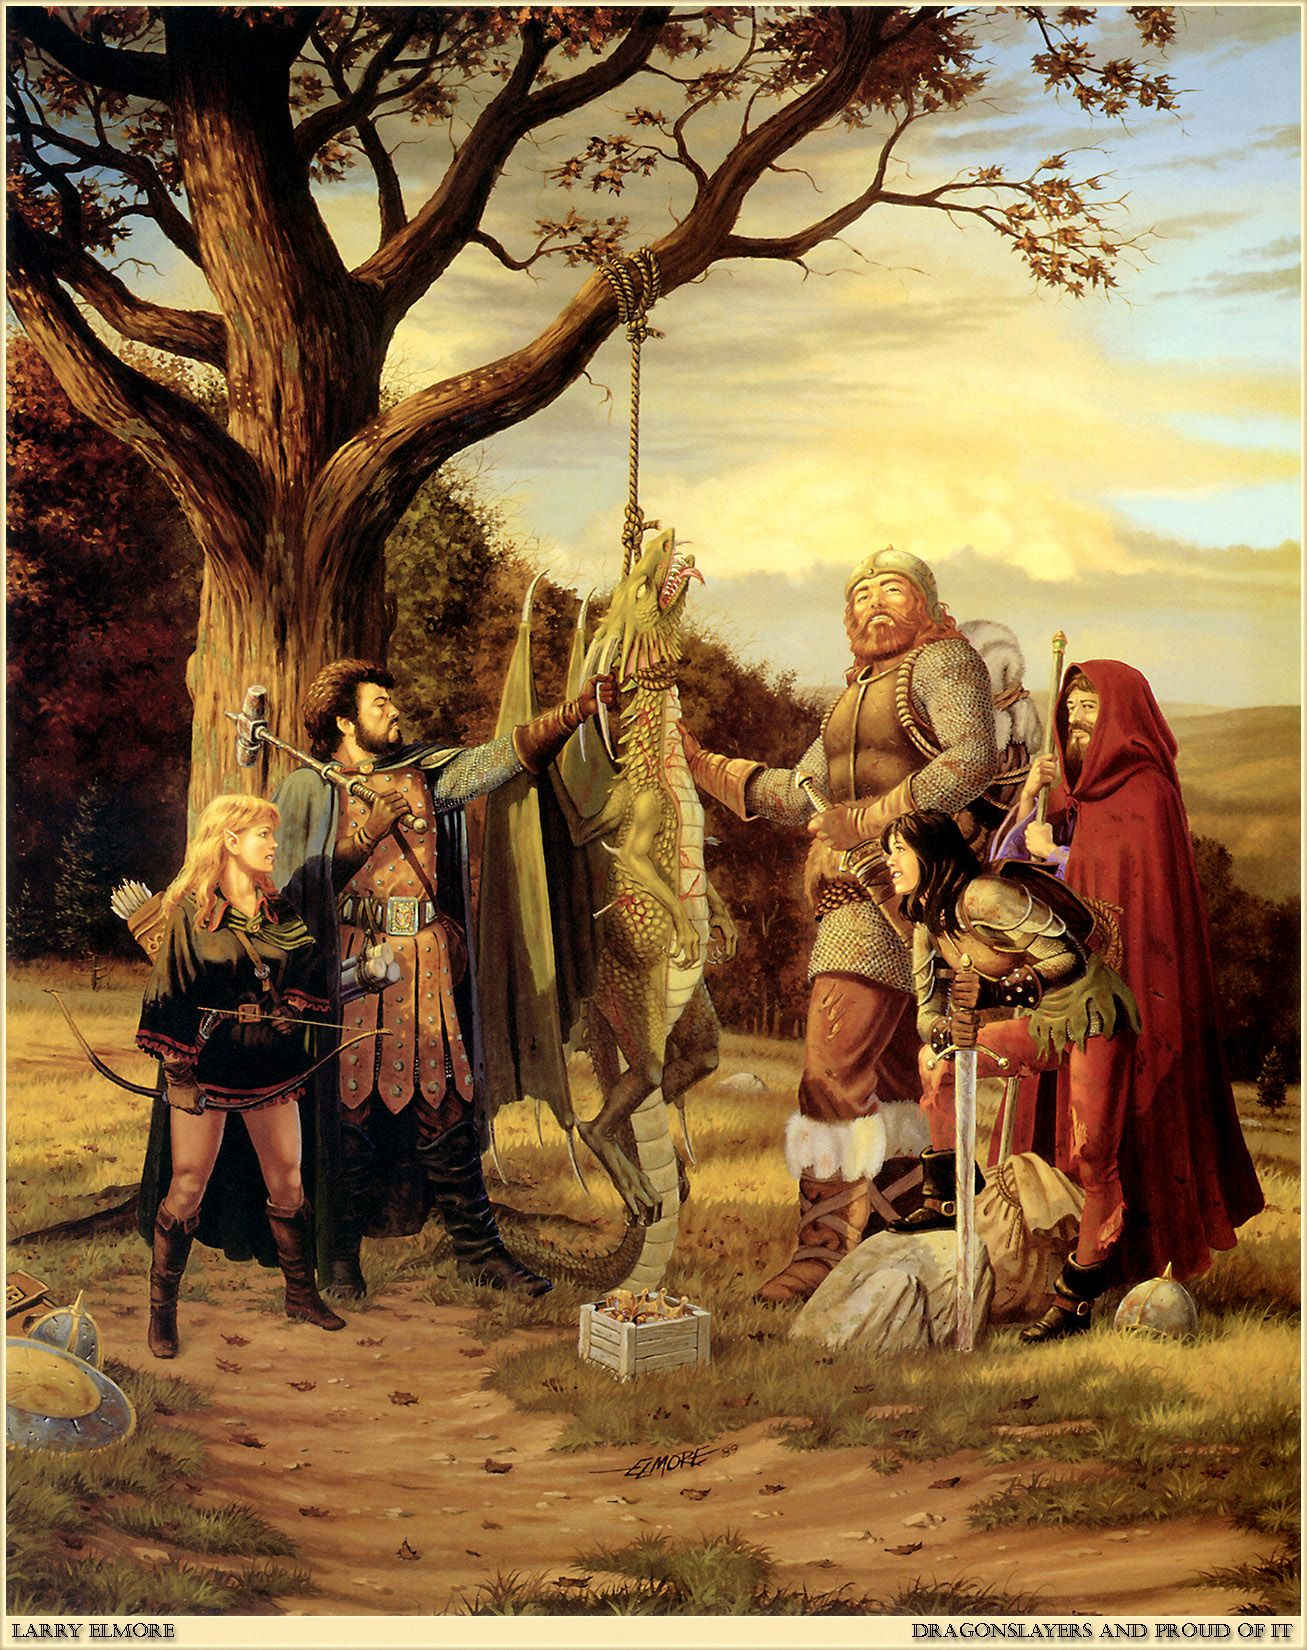 Larry Elmore - Dragonslayers and Proud of It - This Image made me play D&D  for life!